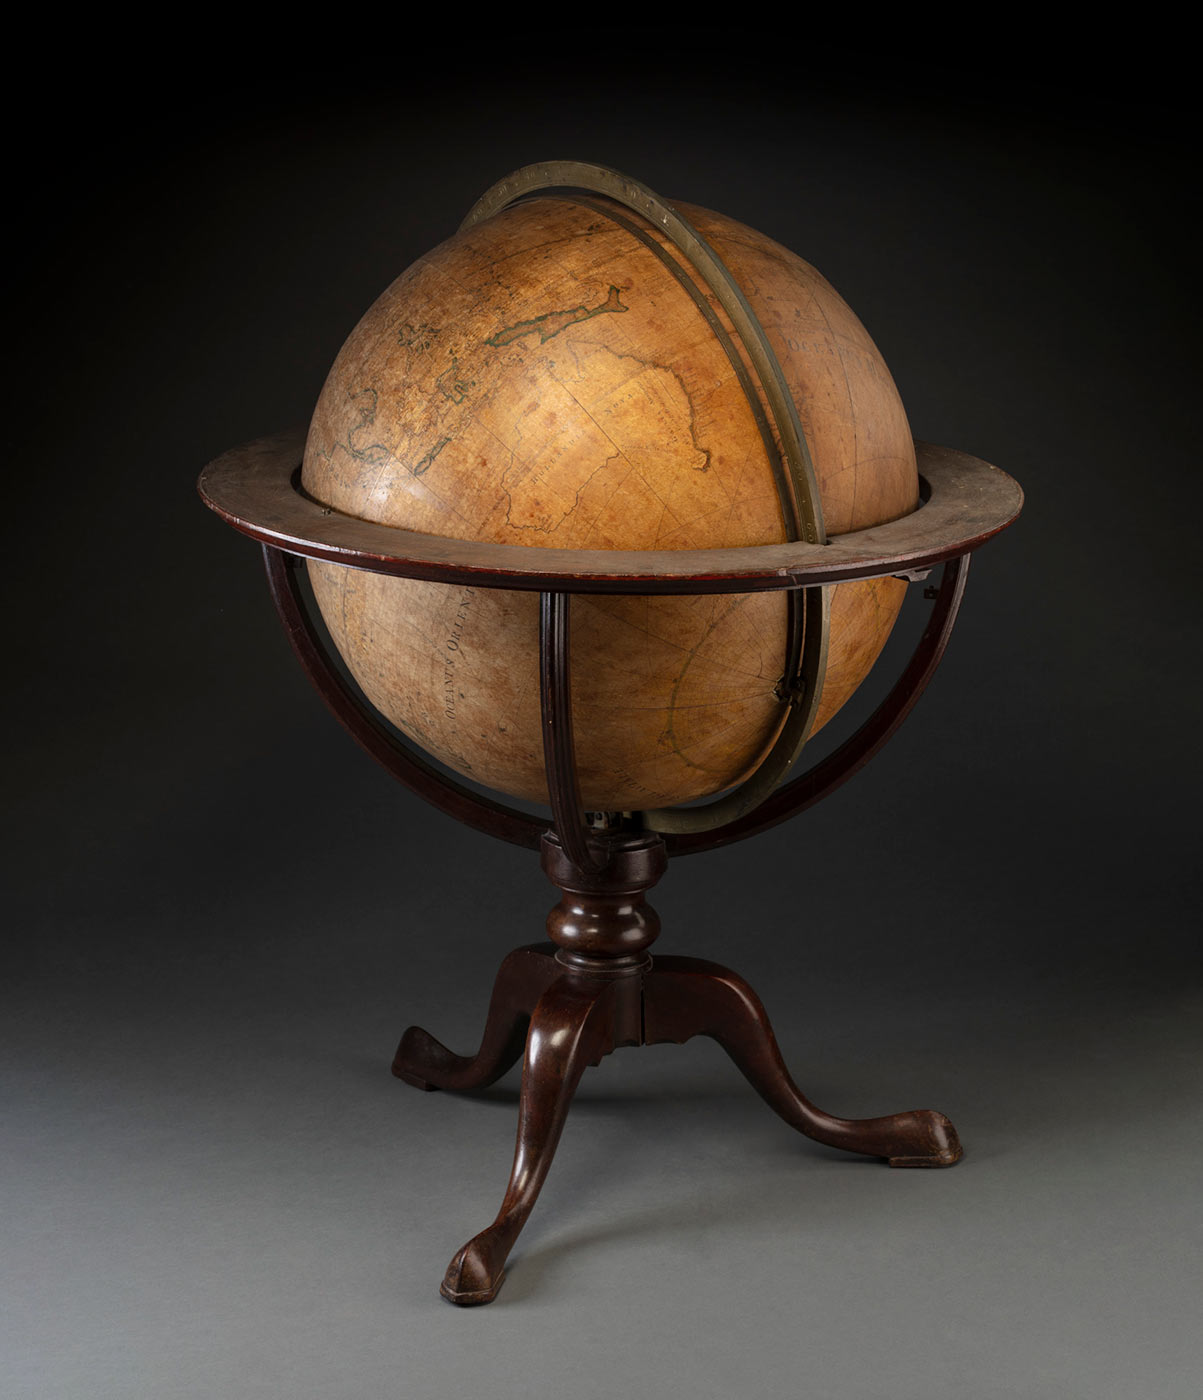 Terrestrial globe showing details of Cooka019s first voyage, set in the original English mahogany tripod stand. - click to view larger image